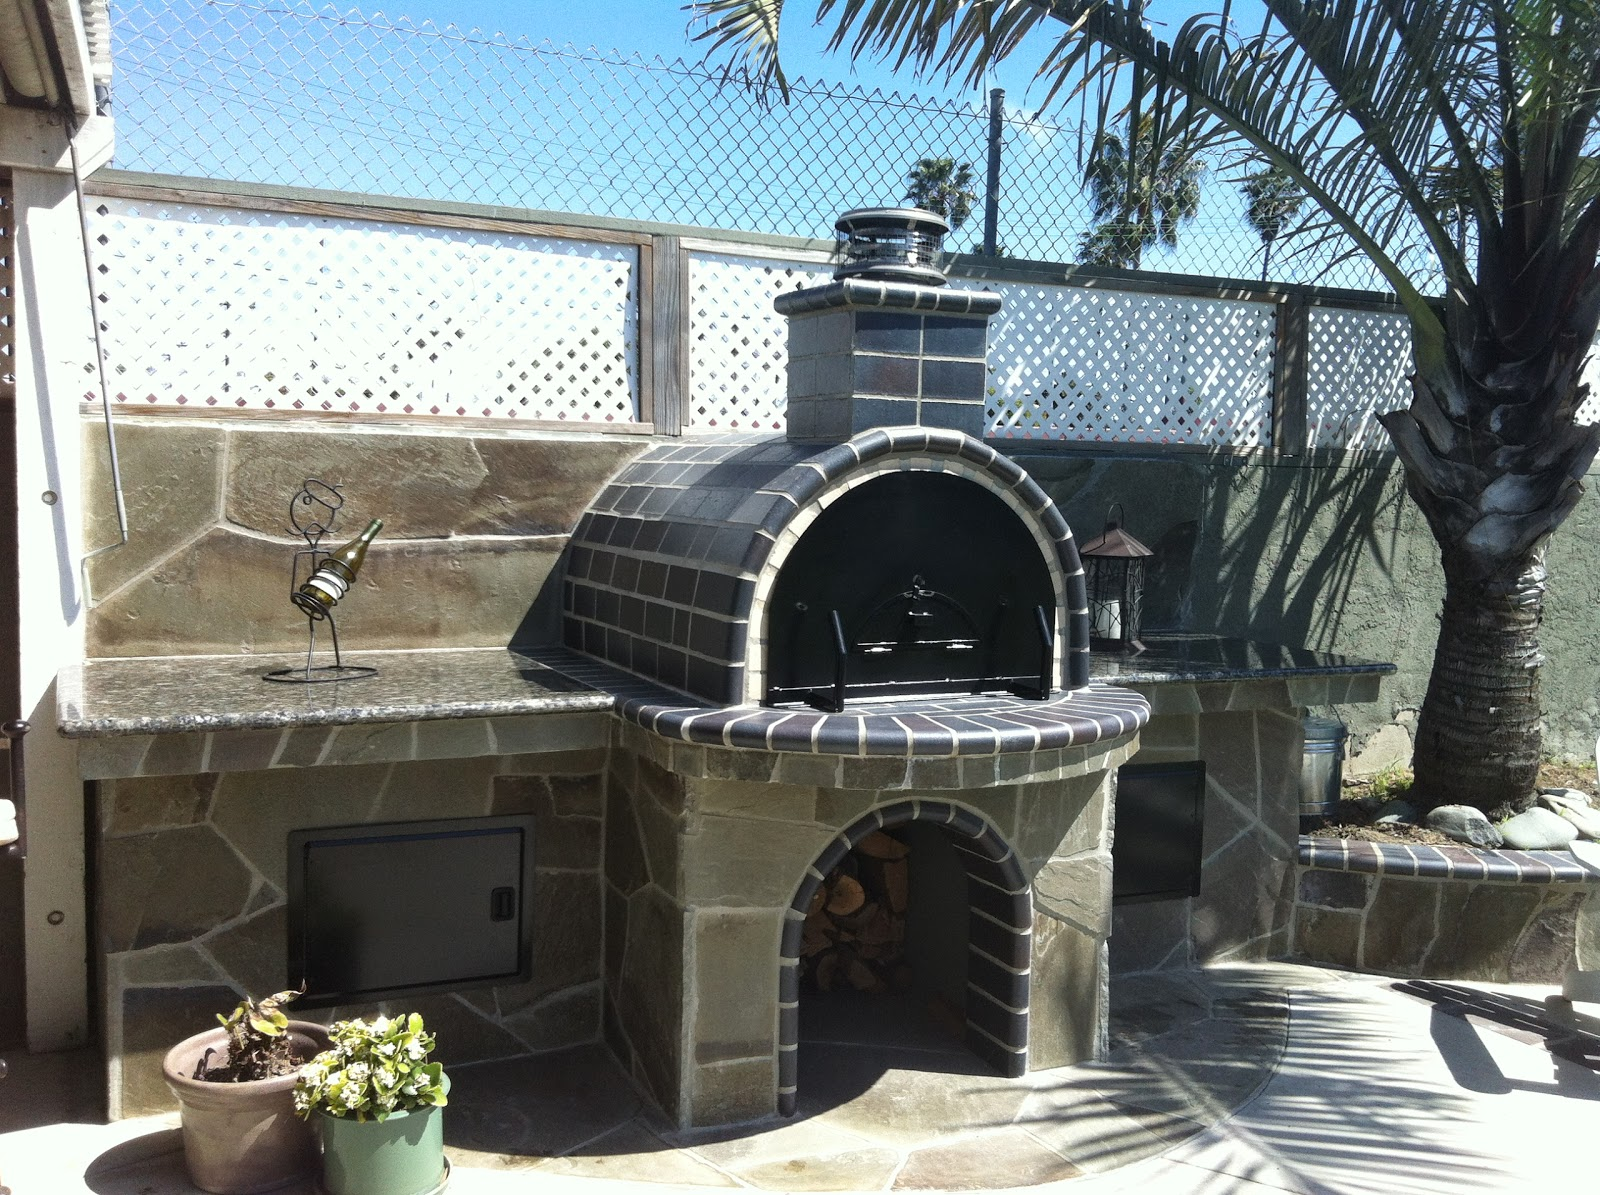 the ovens best is countertops gas artisan oven pizza outdoor fire and countertop only